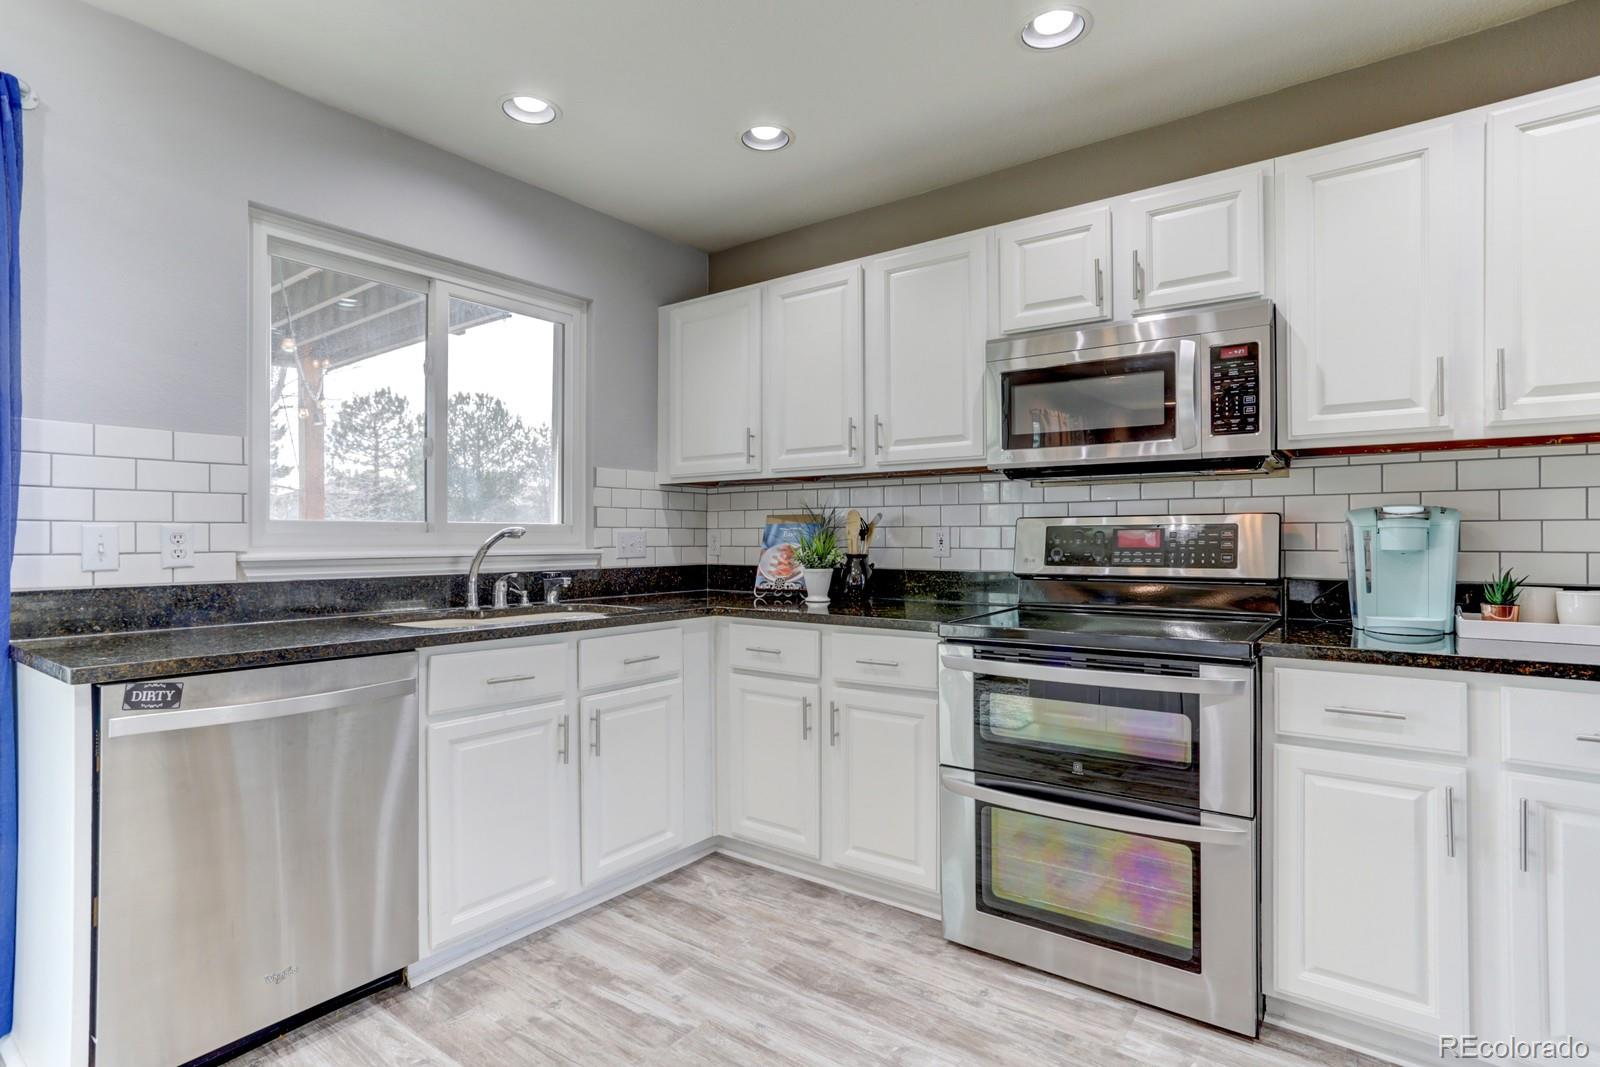 MLS# 3110413 - 5 - 9489 Wolfe Court, Highlands Ranch, CO 80129